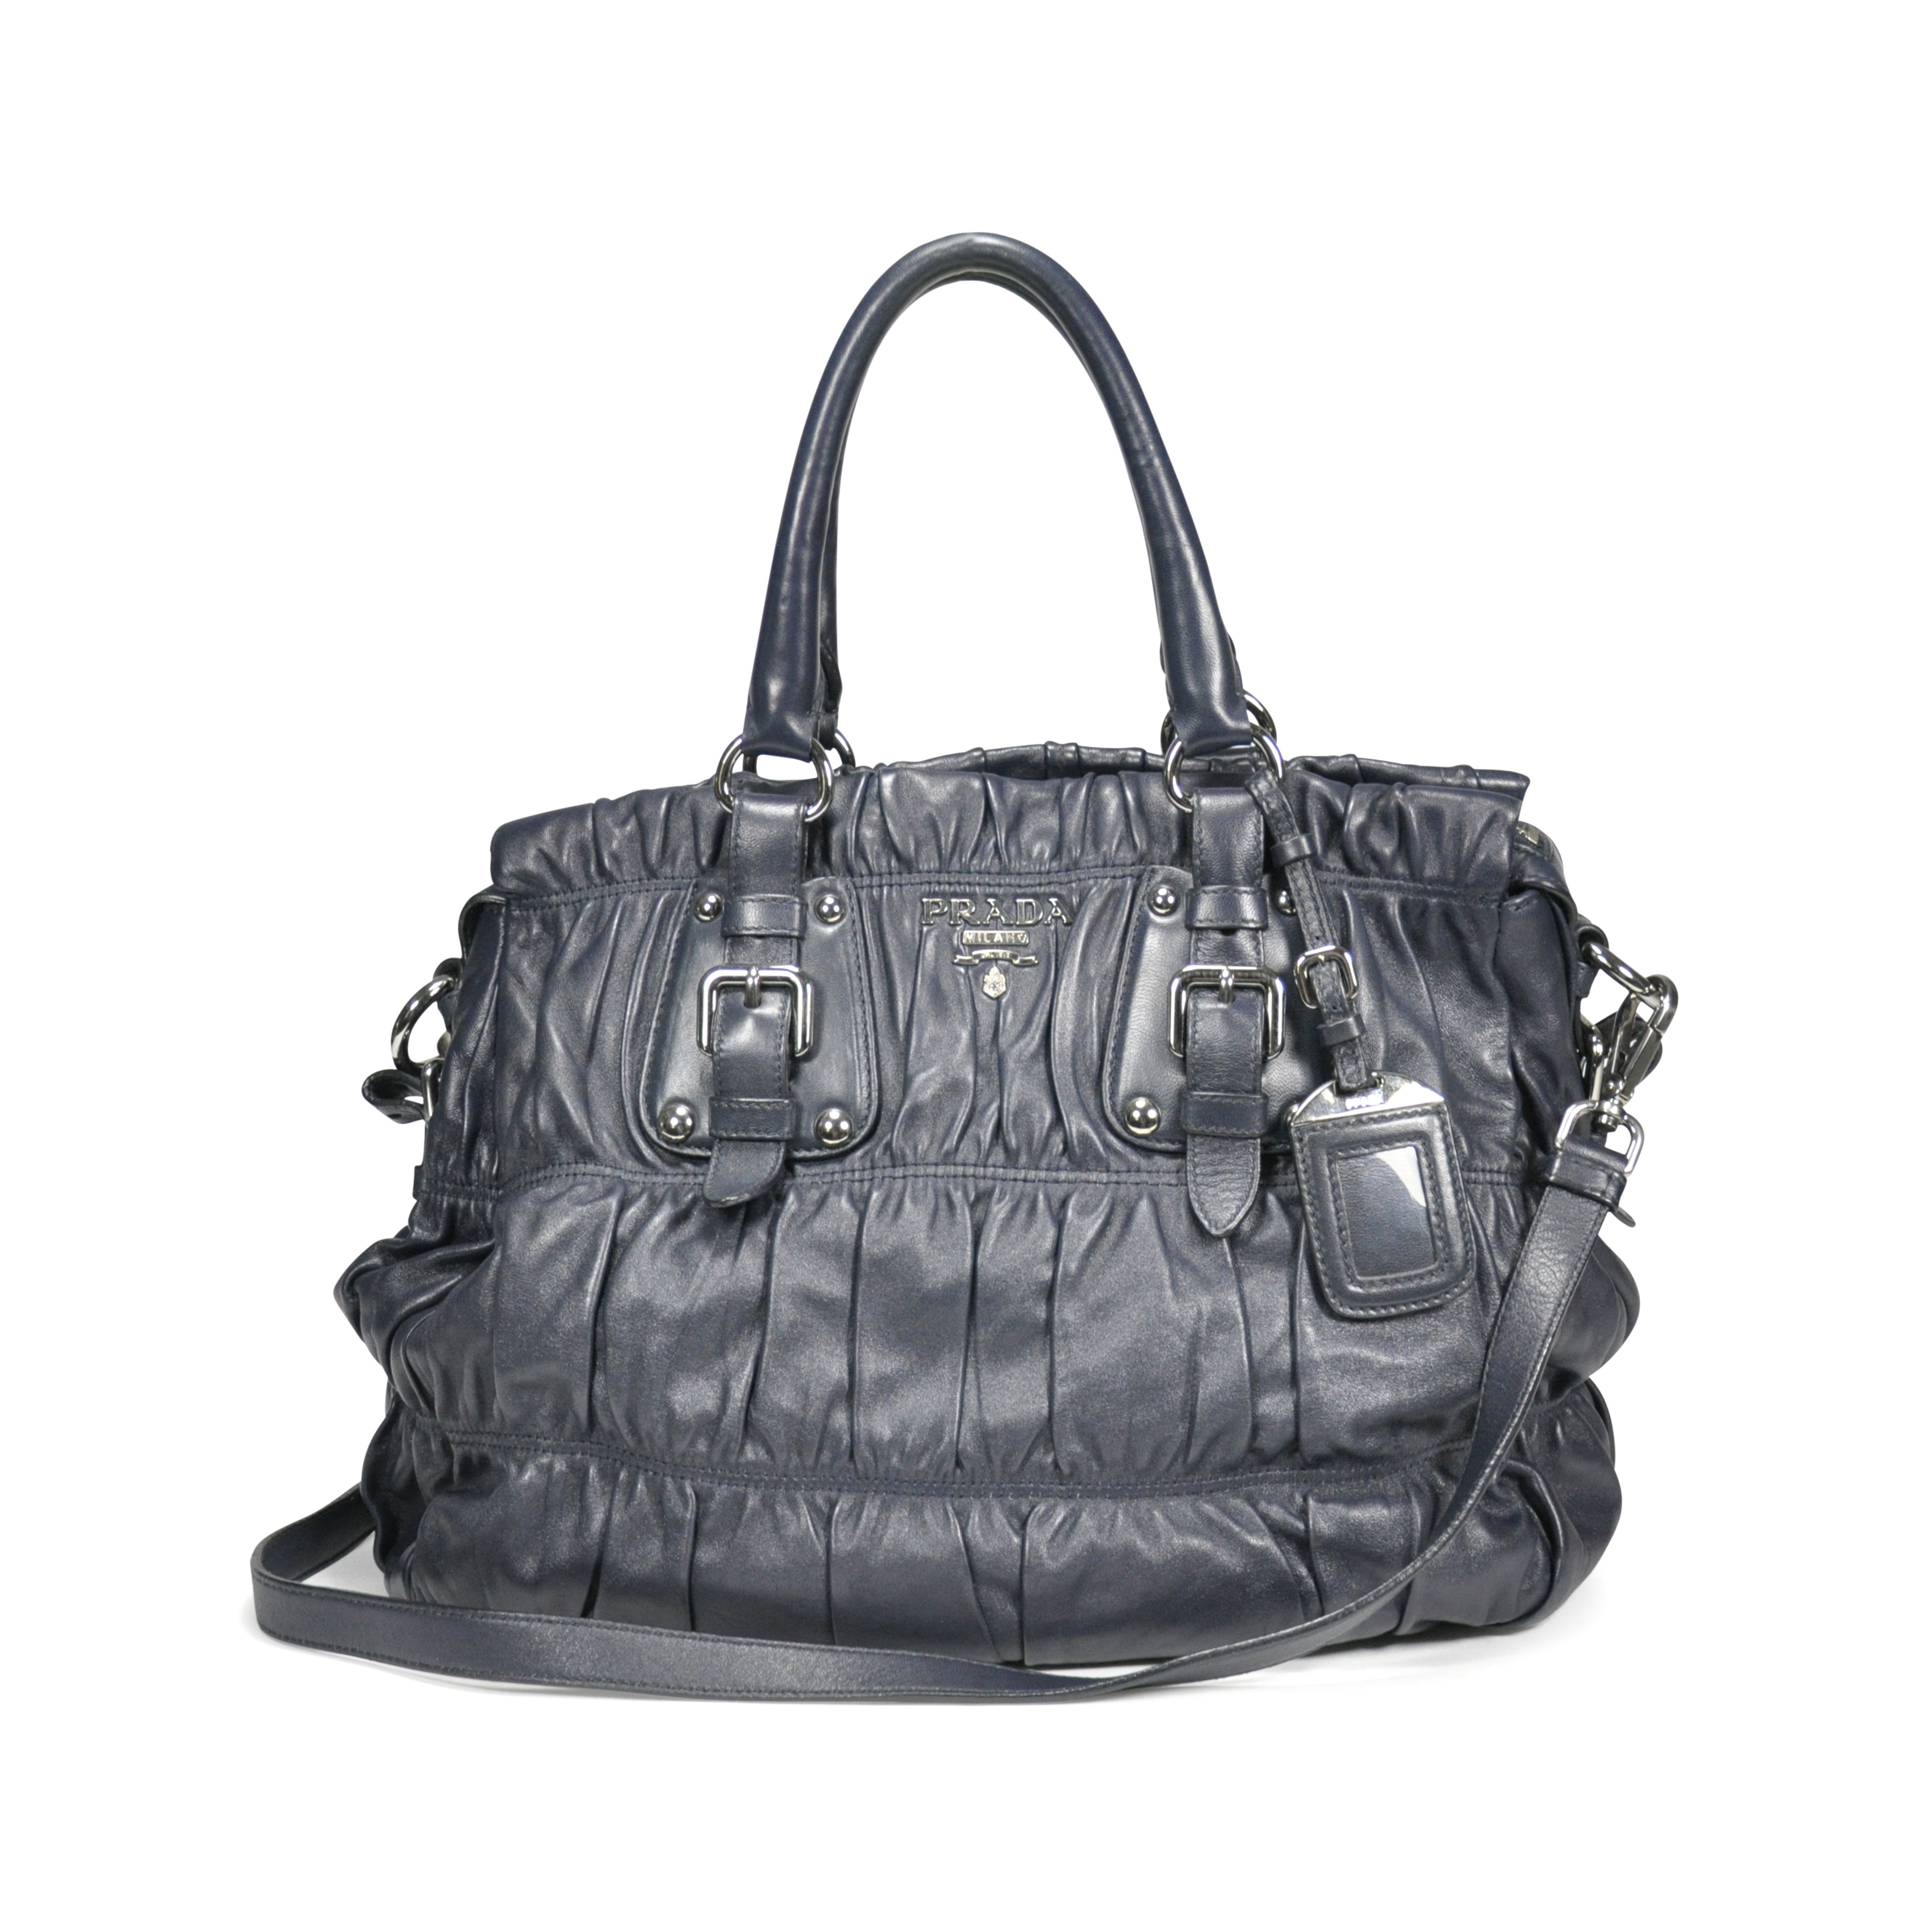 7aab89c0cd0e Authentic Second Hand Prada Nappa Gaufre Bag (PSS-199-00004) | THE FIFTH  COLLECTION